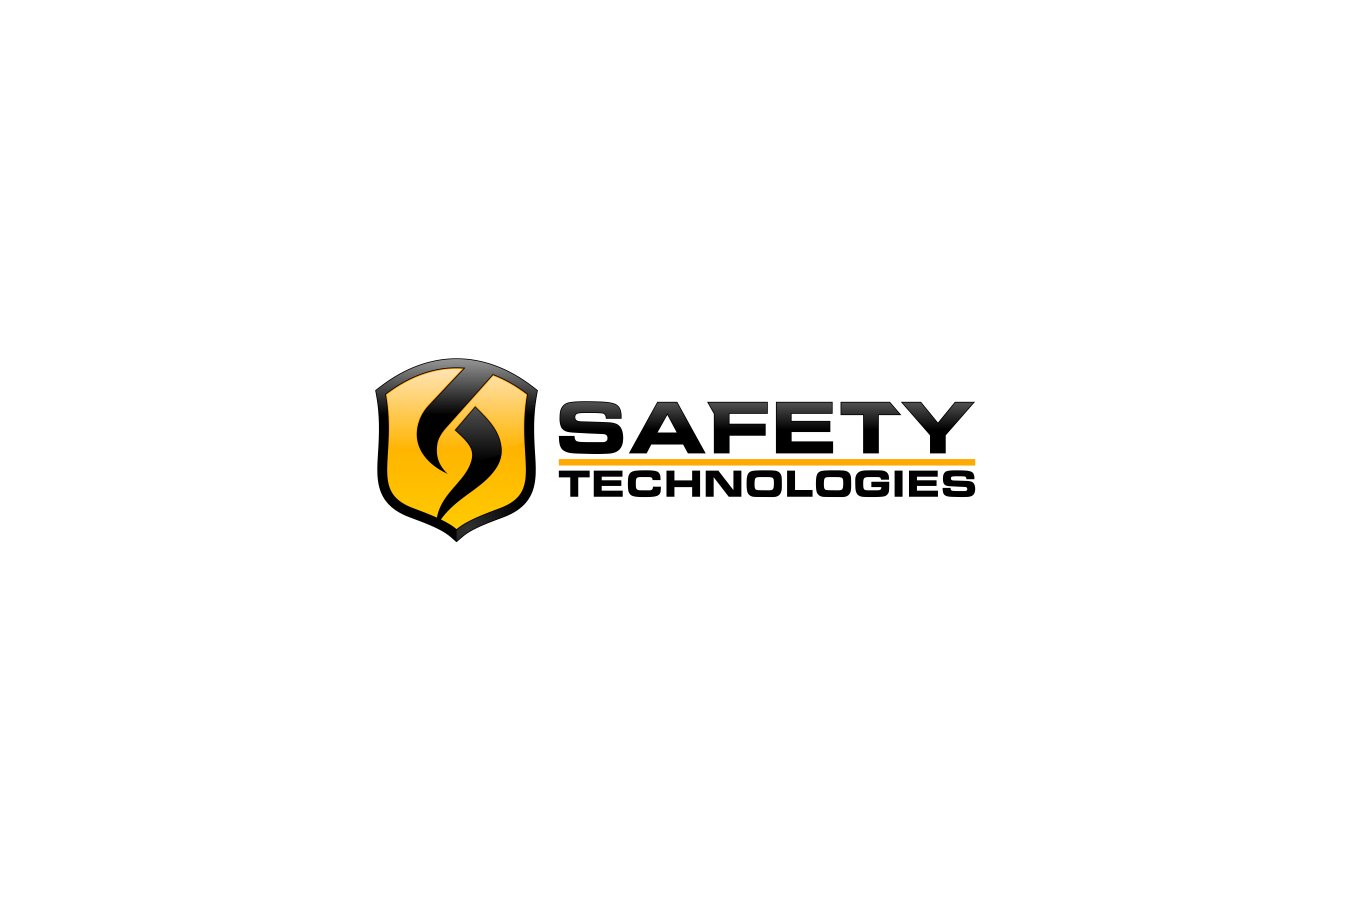 Help Safety Technologies with a new logo and business card